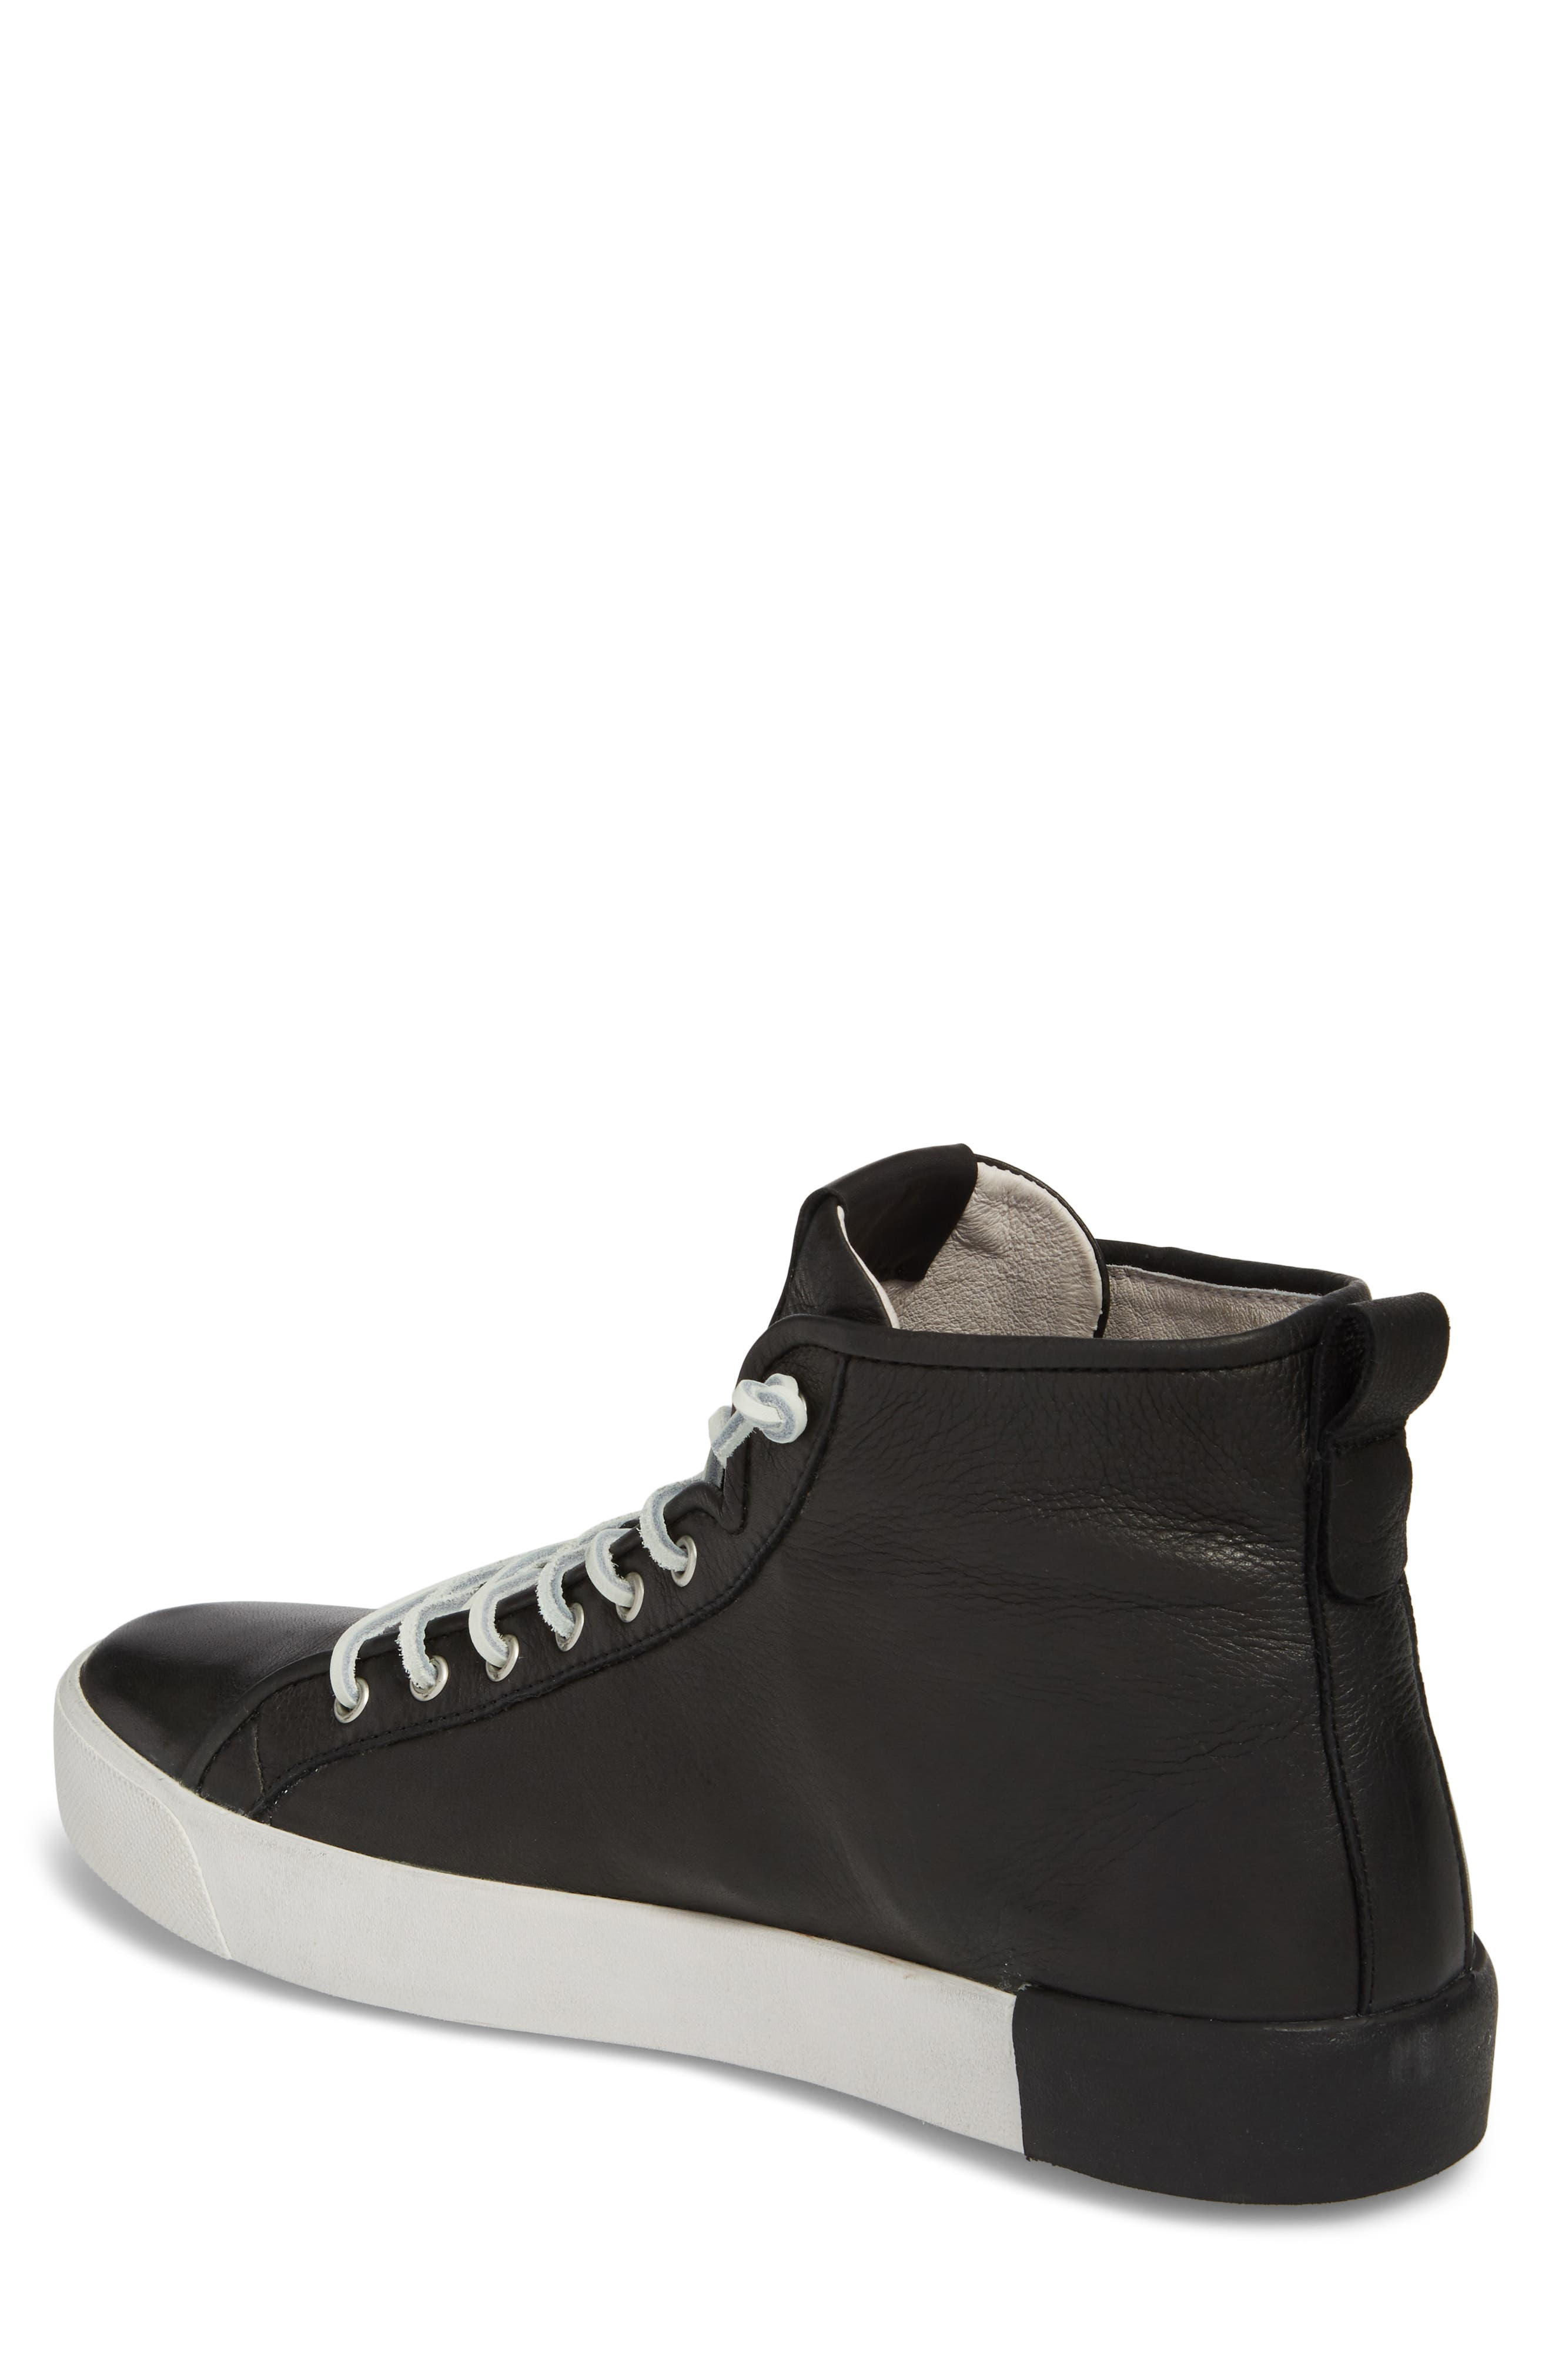 PM43 Slip-On High Top Sneaker,                             Alternate thumbnail 2, color,                             Black Leather